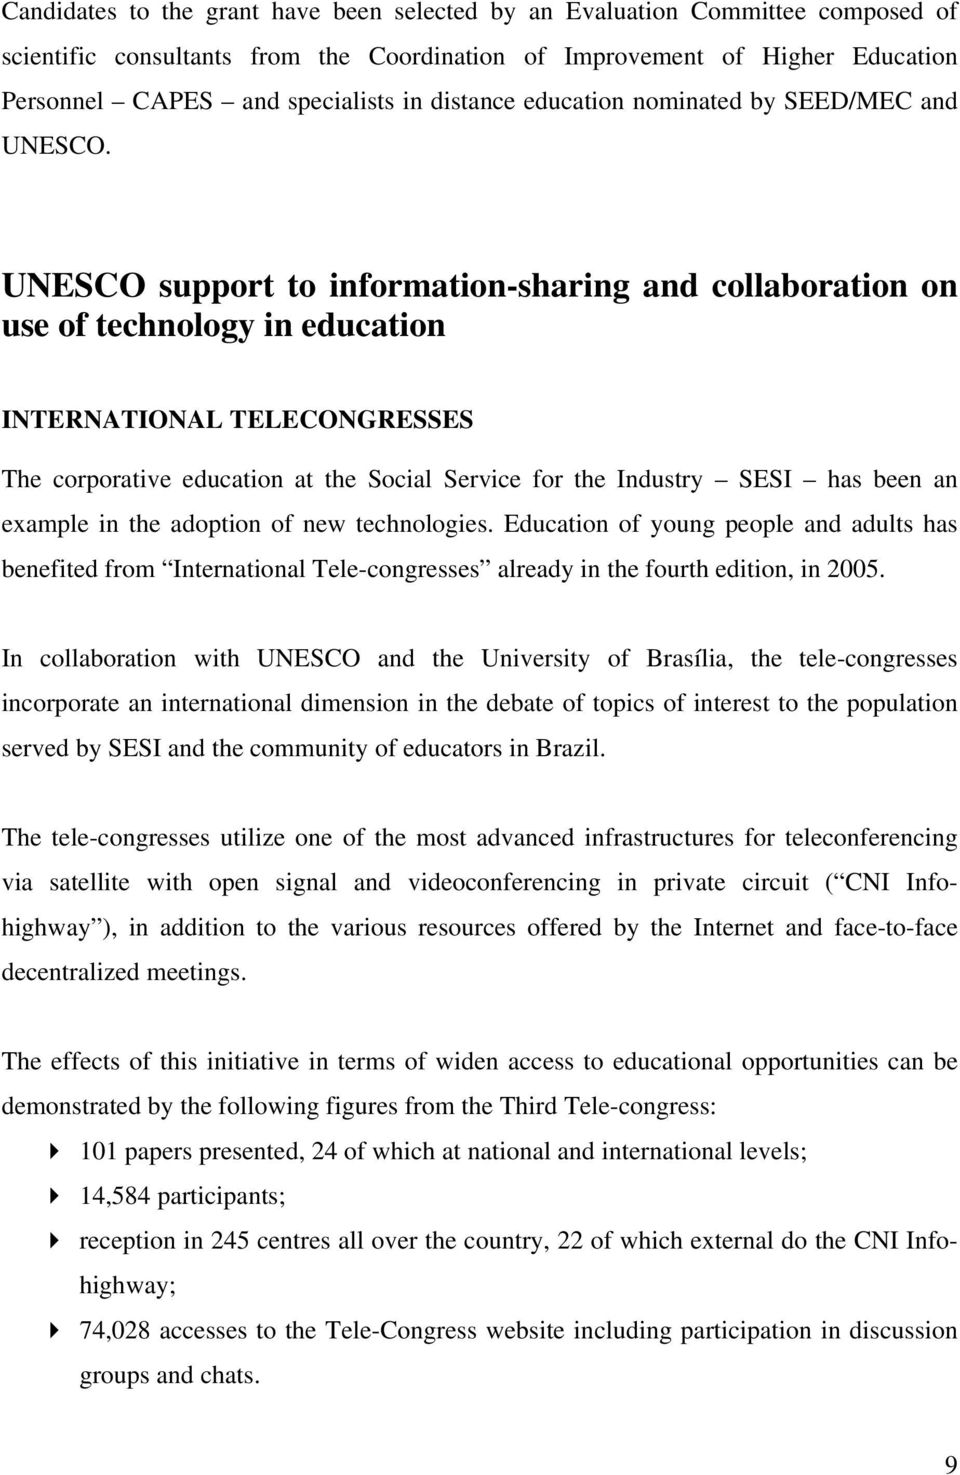 UNESCO support to information-sharing and collaboration on use of technology in education INTERNATIONAL TELECONGRESSES The corporative education at the Social Service for the Industry SESI has been